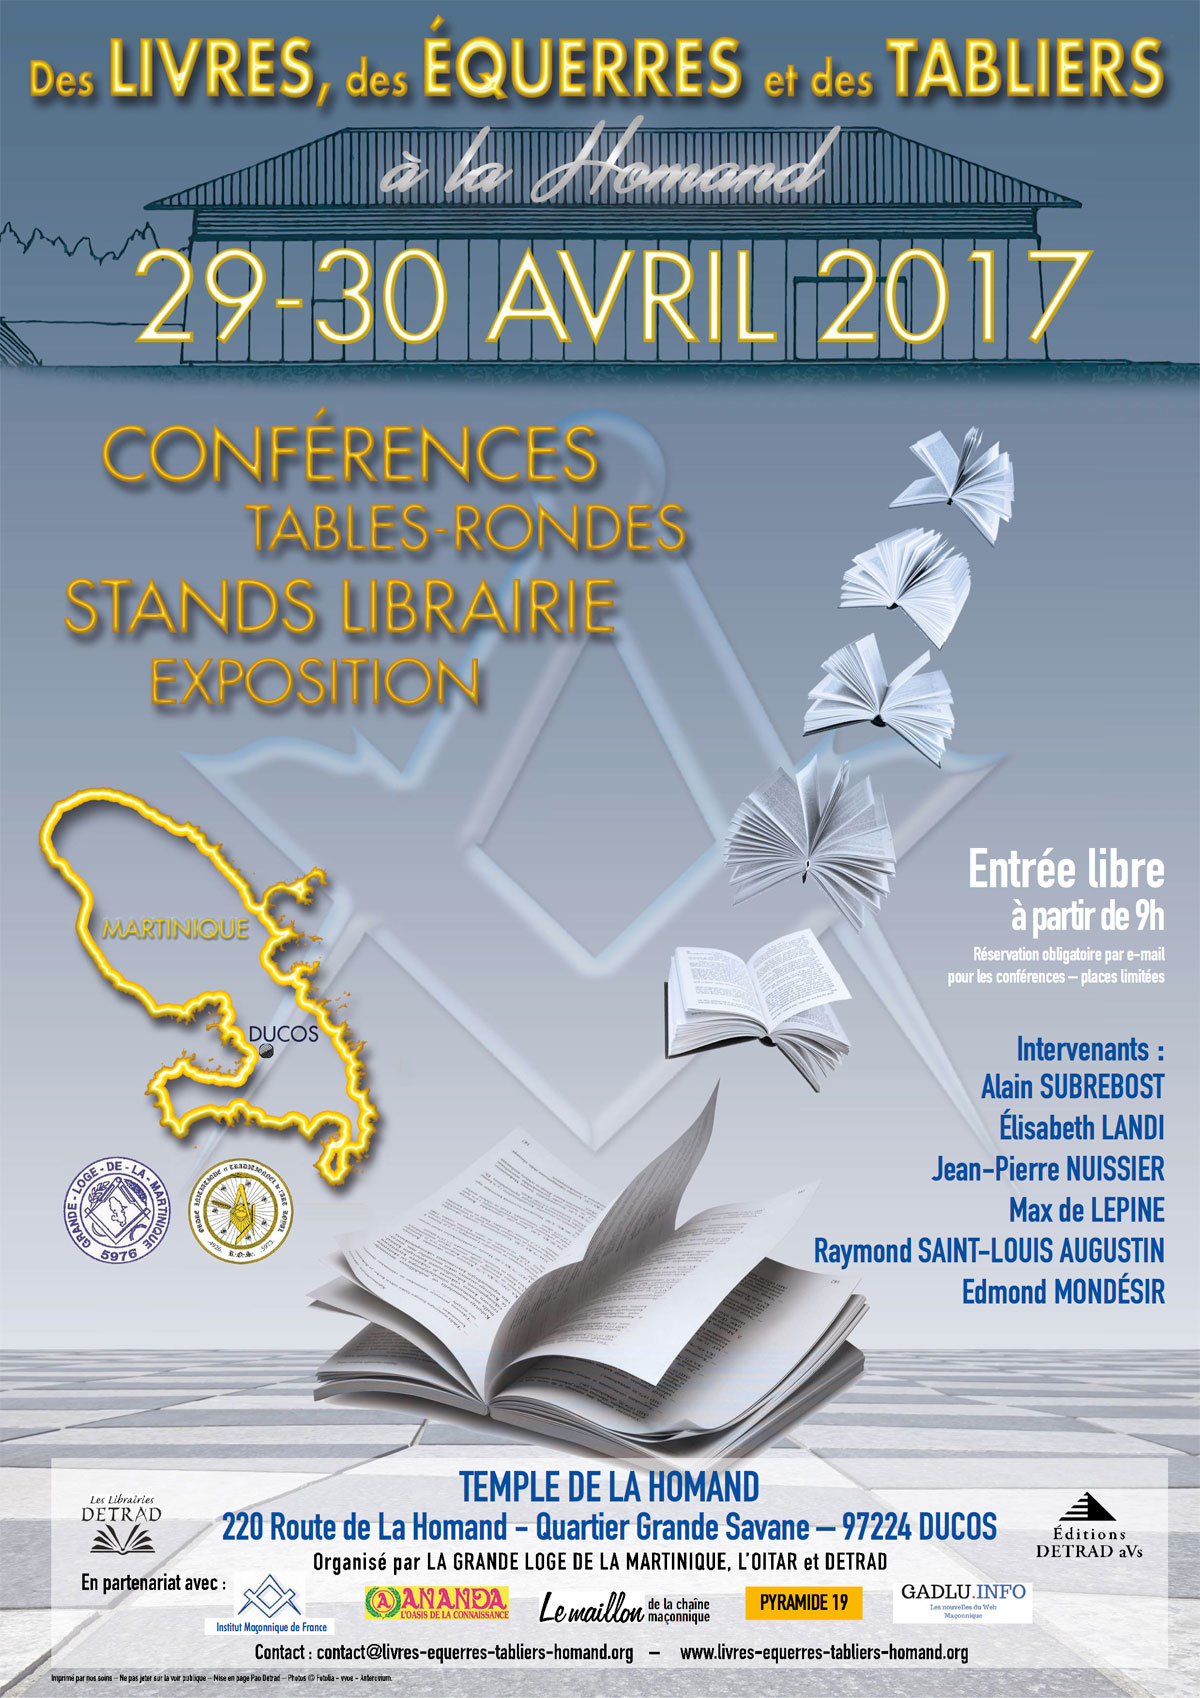 livres-equerres-tabliers-homand-2017-web-large